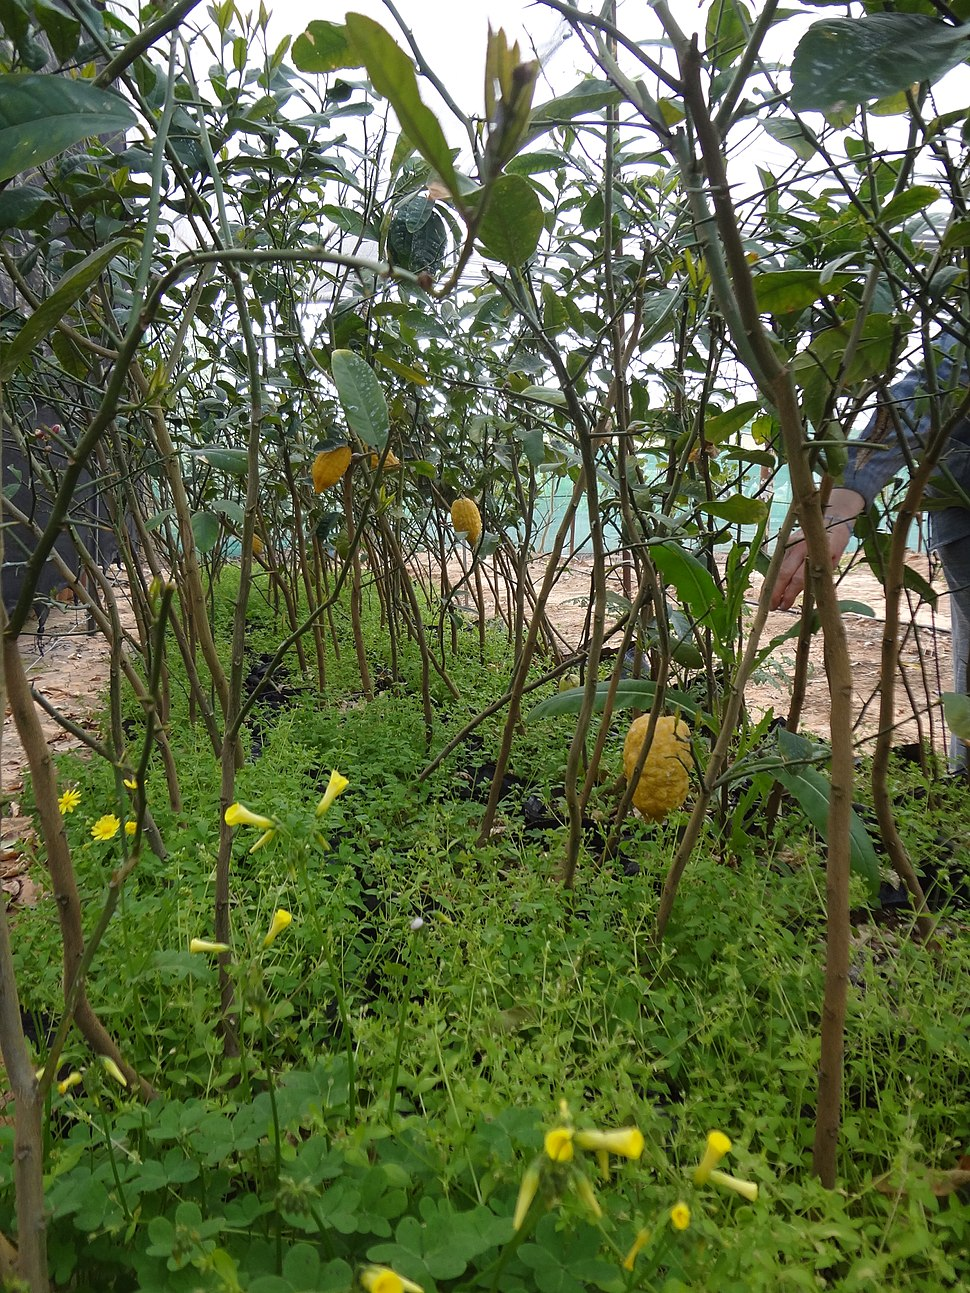 Etrog plants at kfar chabad with growing etrogs